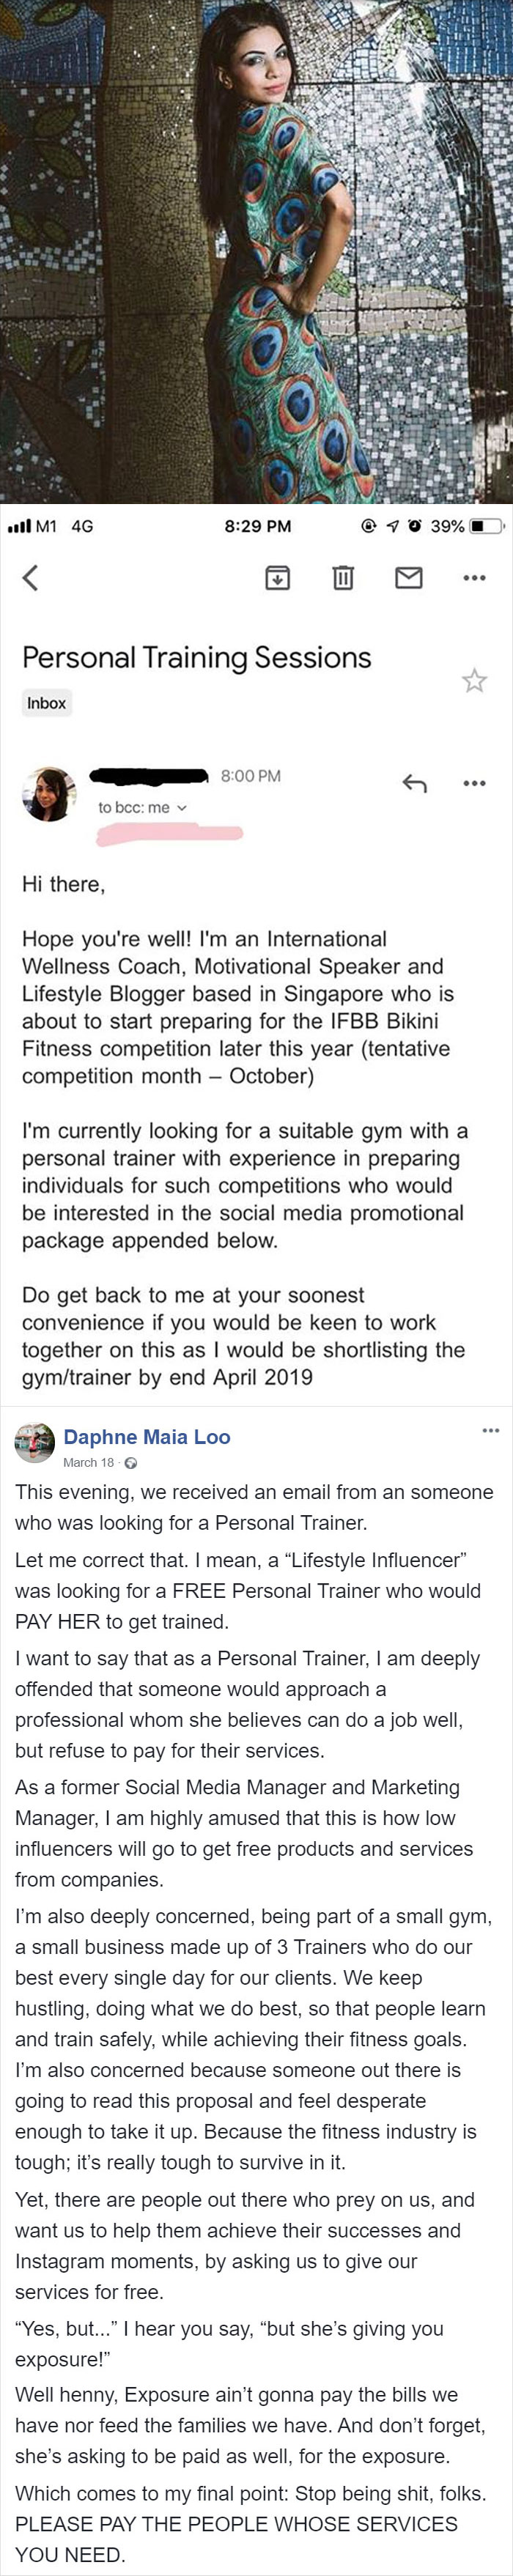 This Influencer Was Looking For A Personal Trainer That Would Pay Her For The 'Incredible' Opportunity Of Training Her